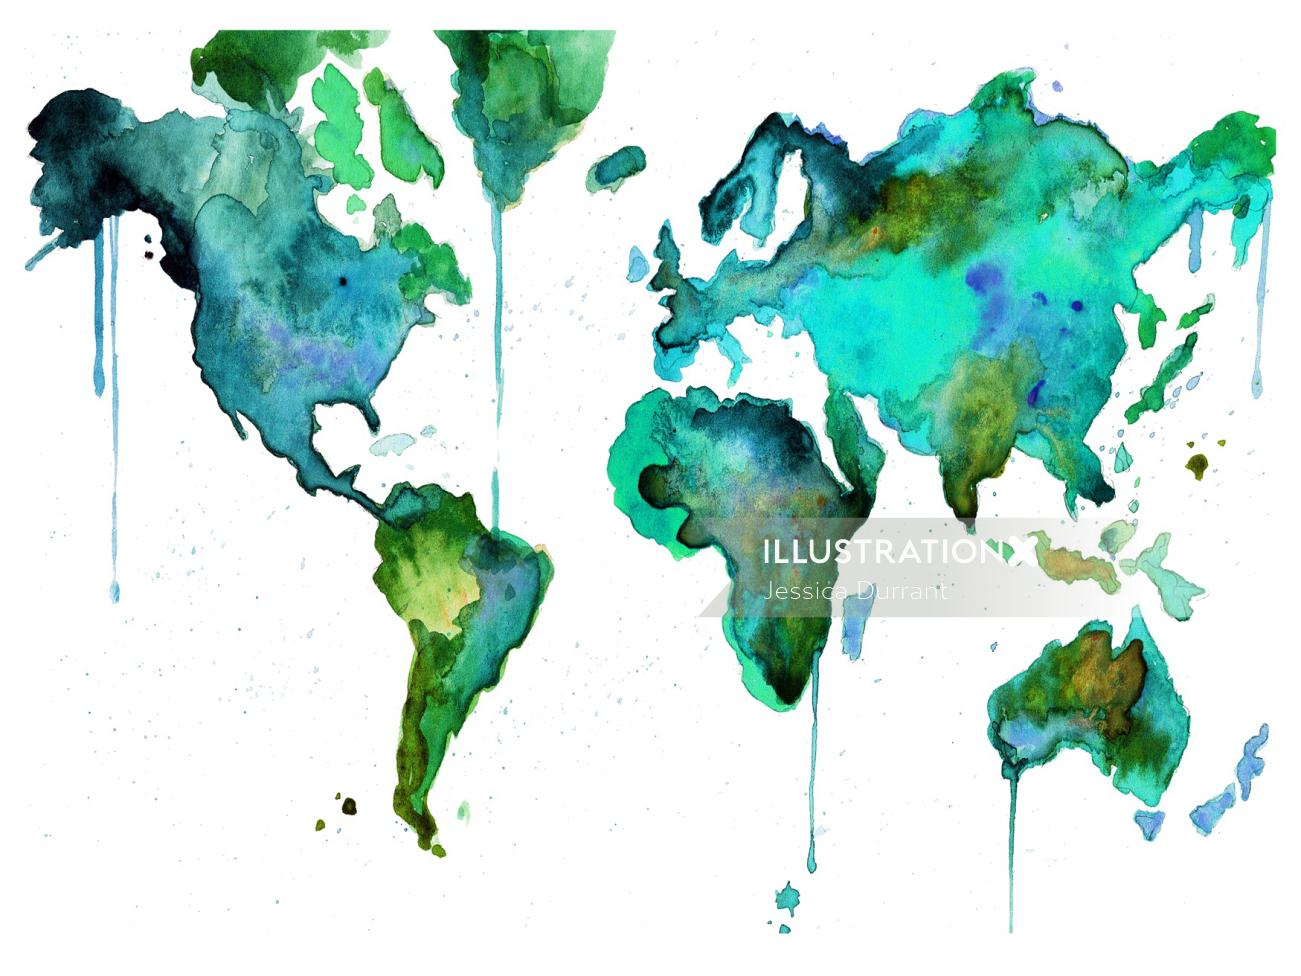 Green painted world map by Jessica Durrant